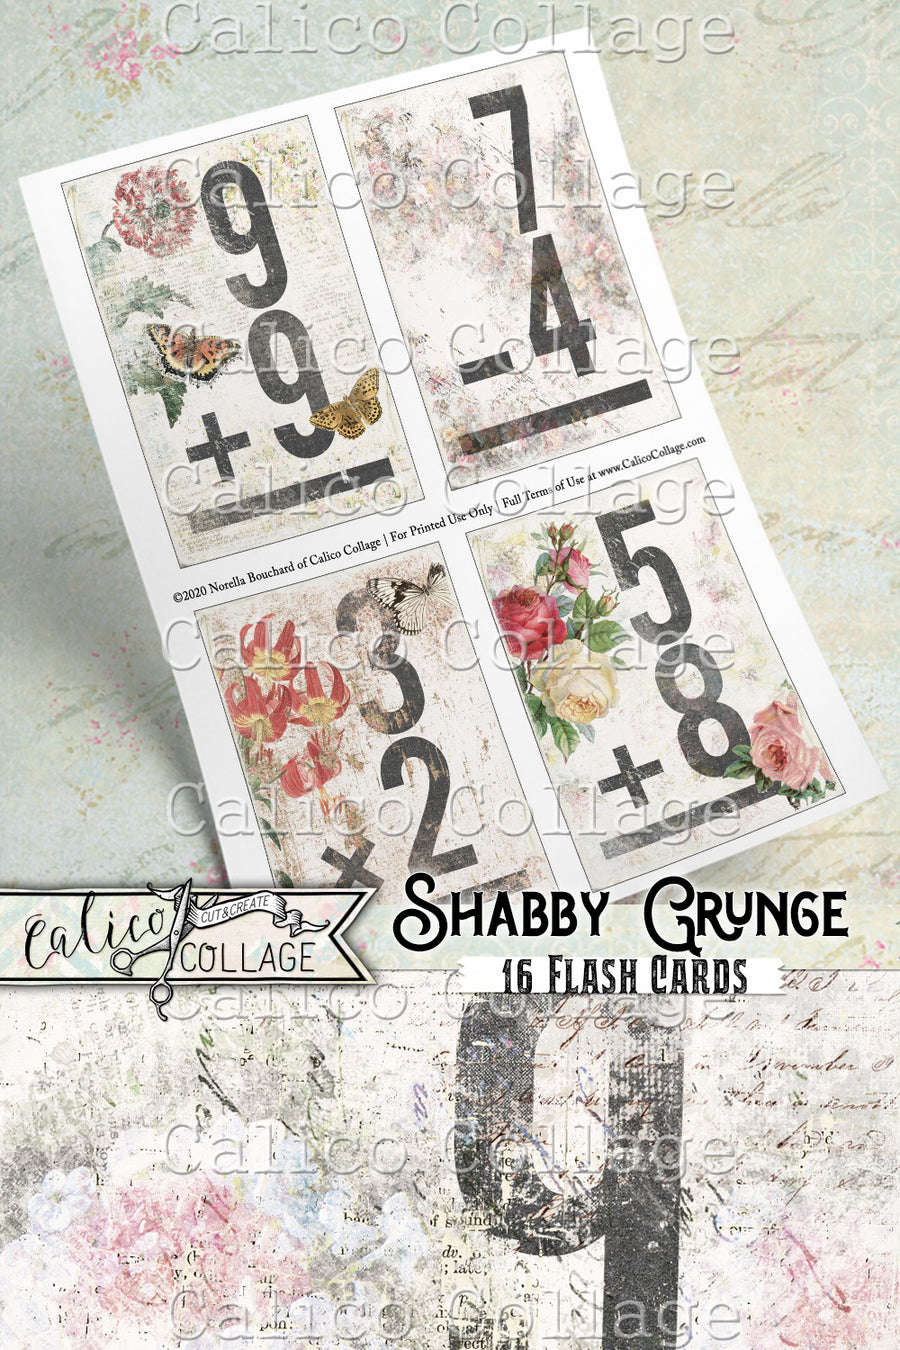 Printable Junk Journal Flashcards, Shabby Grunge